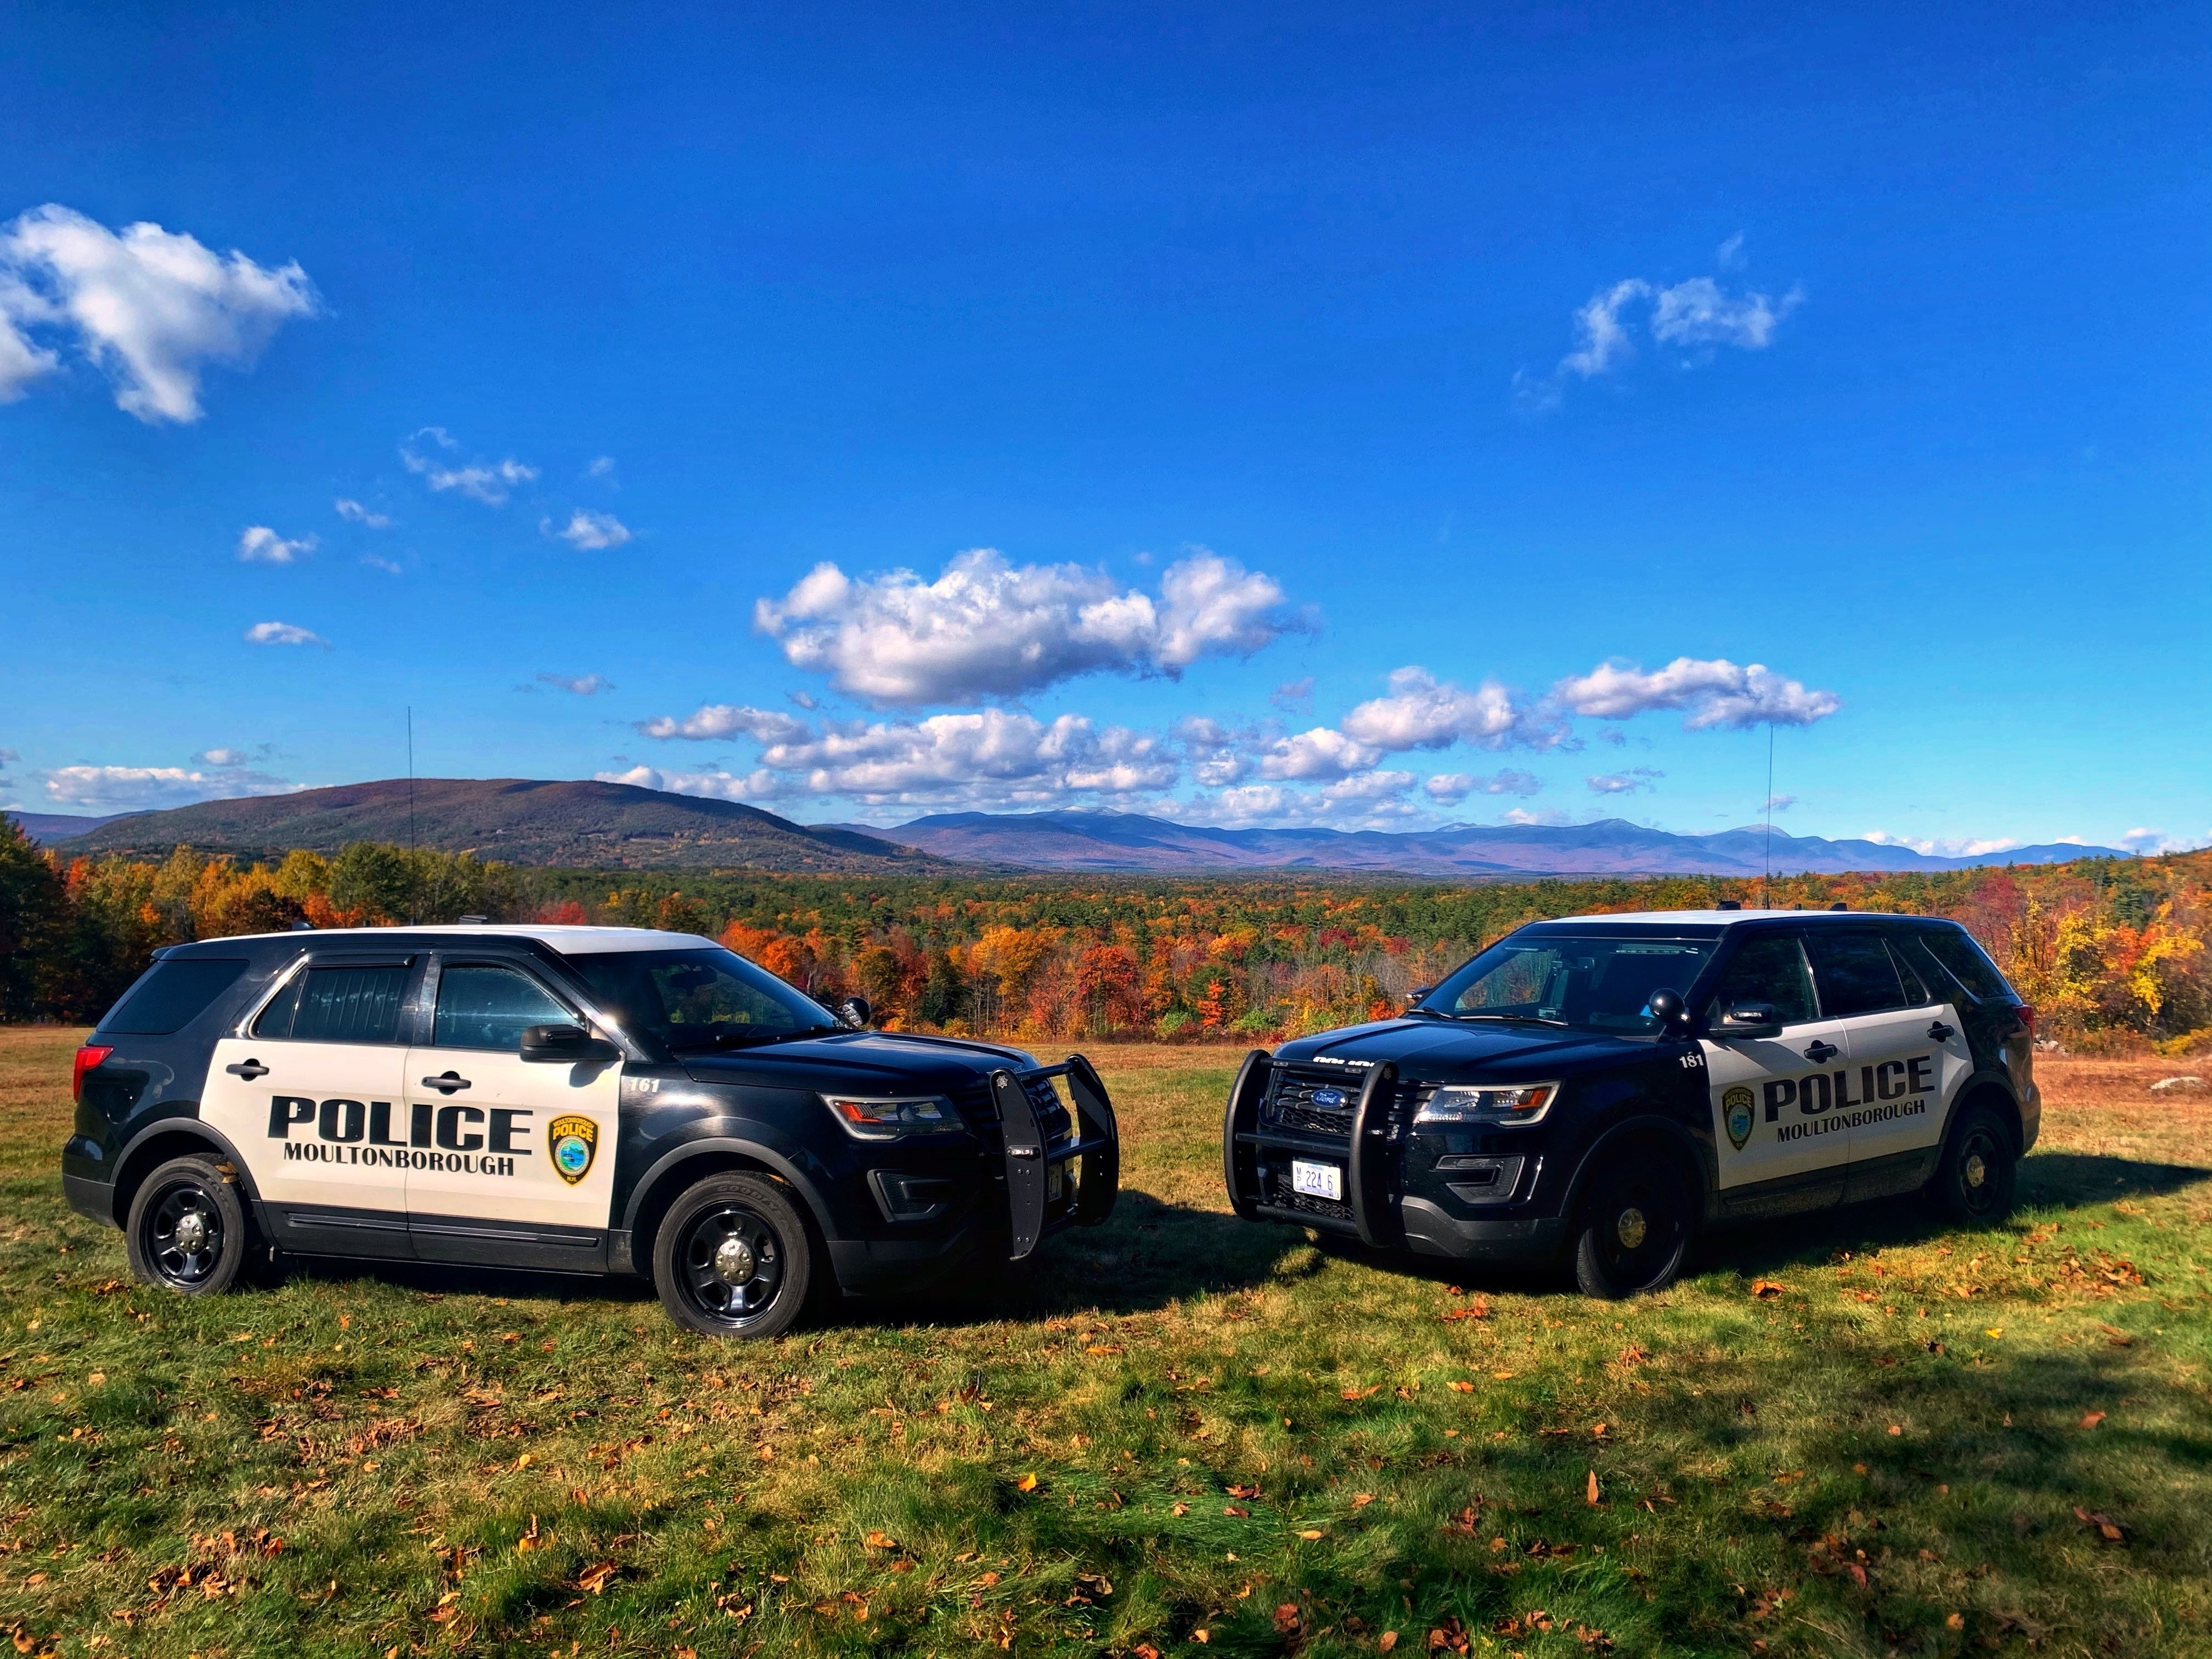 Moultonborough Police Department, NH Police Jobs